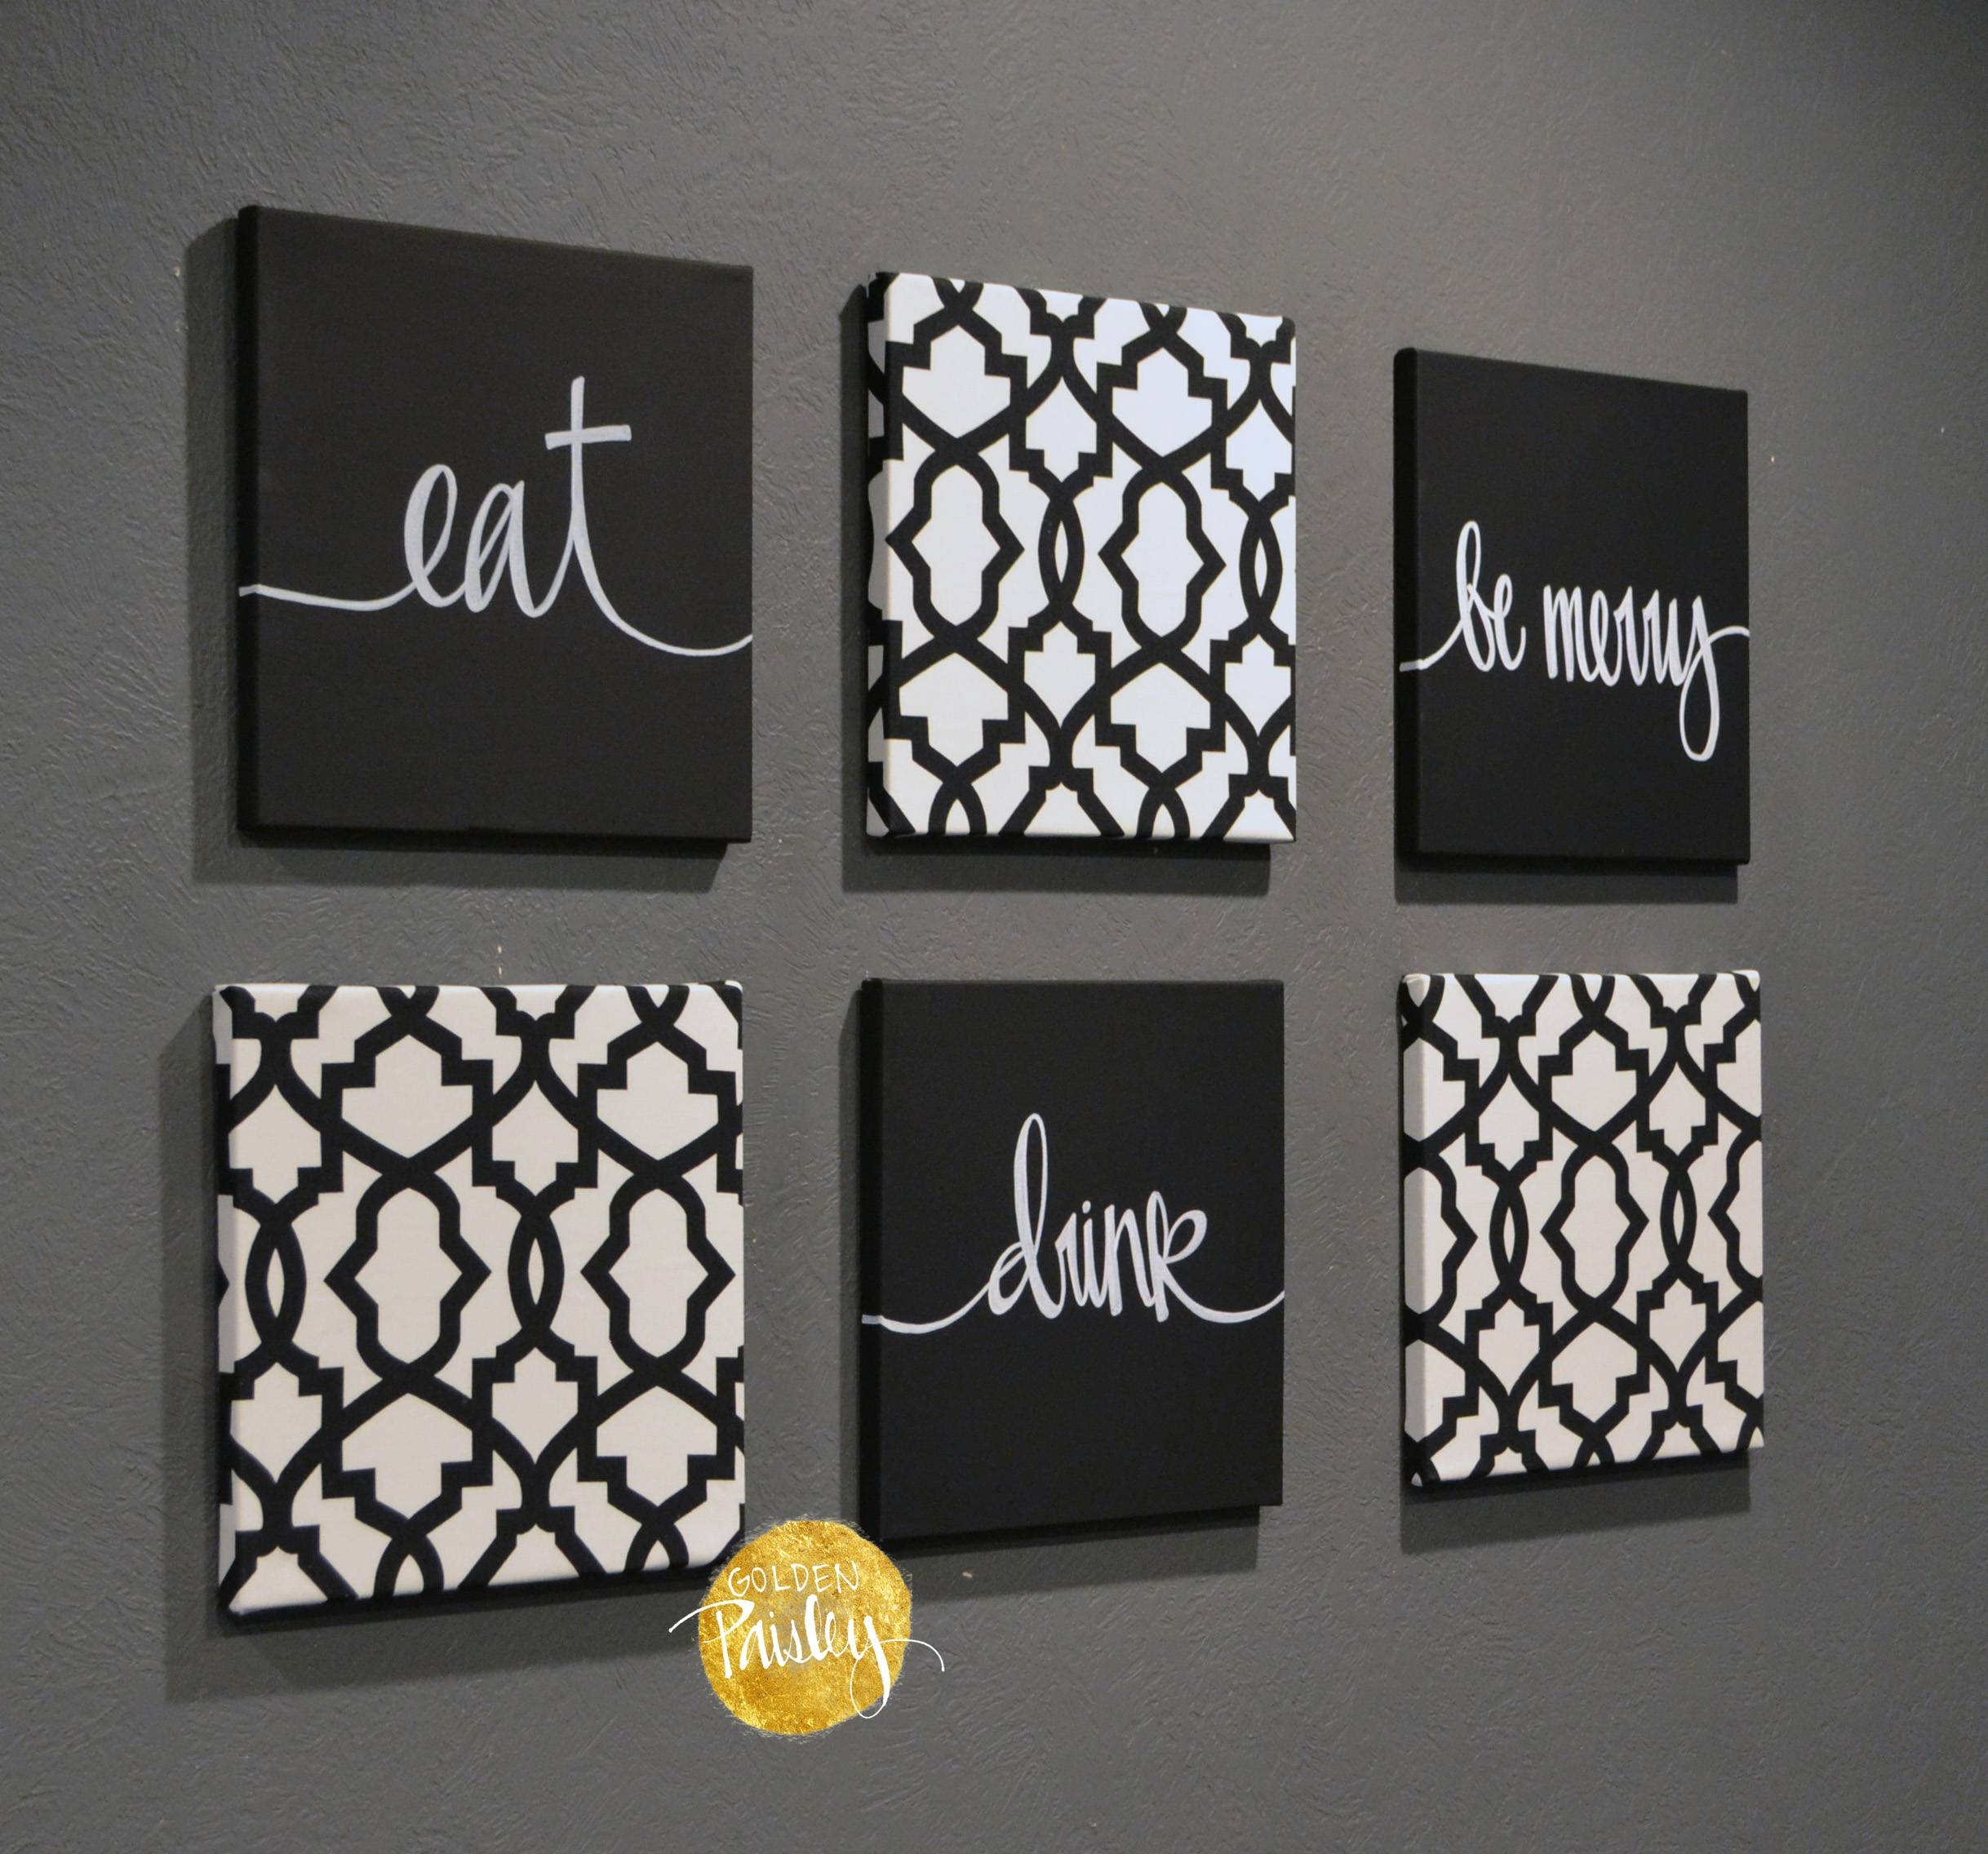 Black And White Trellis 6 Pack Wall Art Throughout Most Current Black And White Wall Art Sets (View 4 of 20)